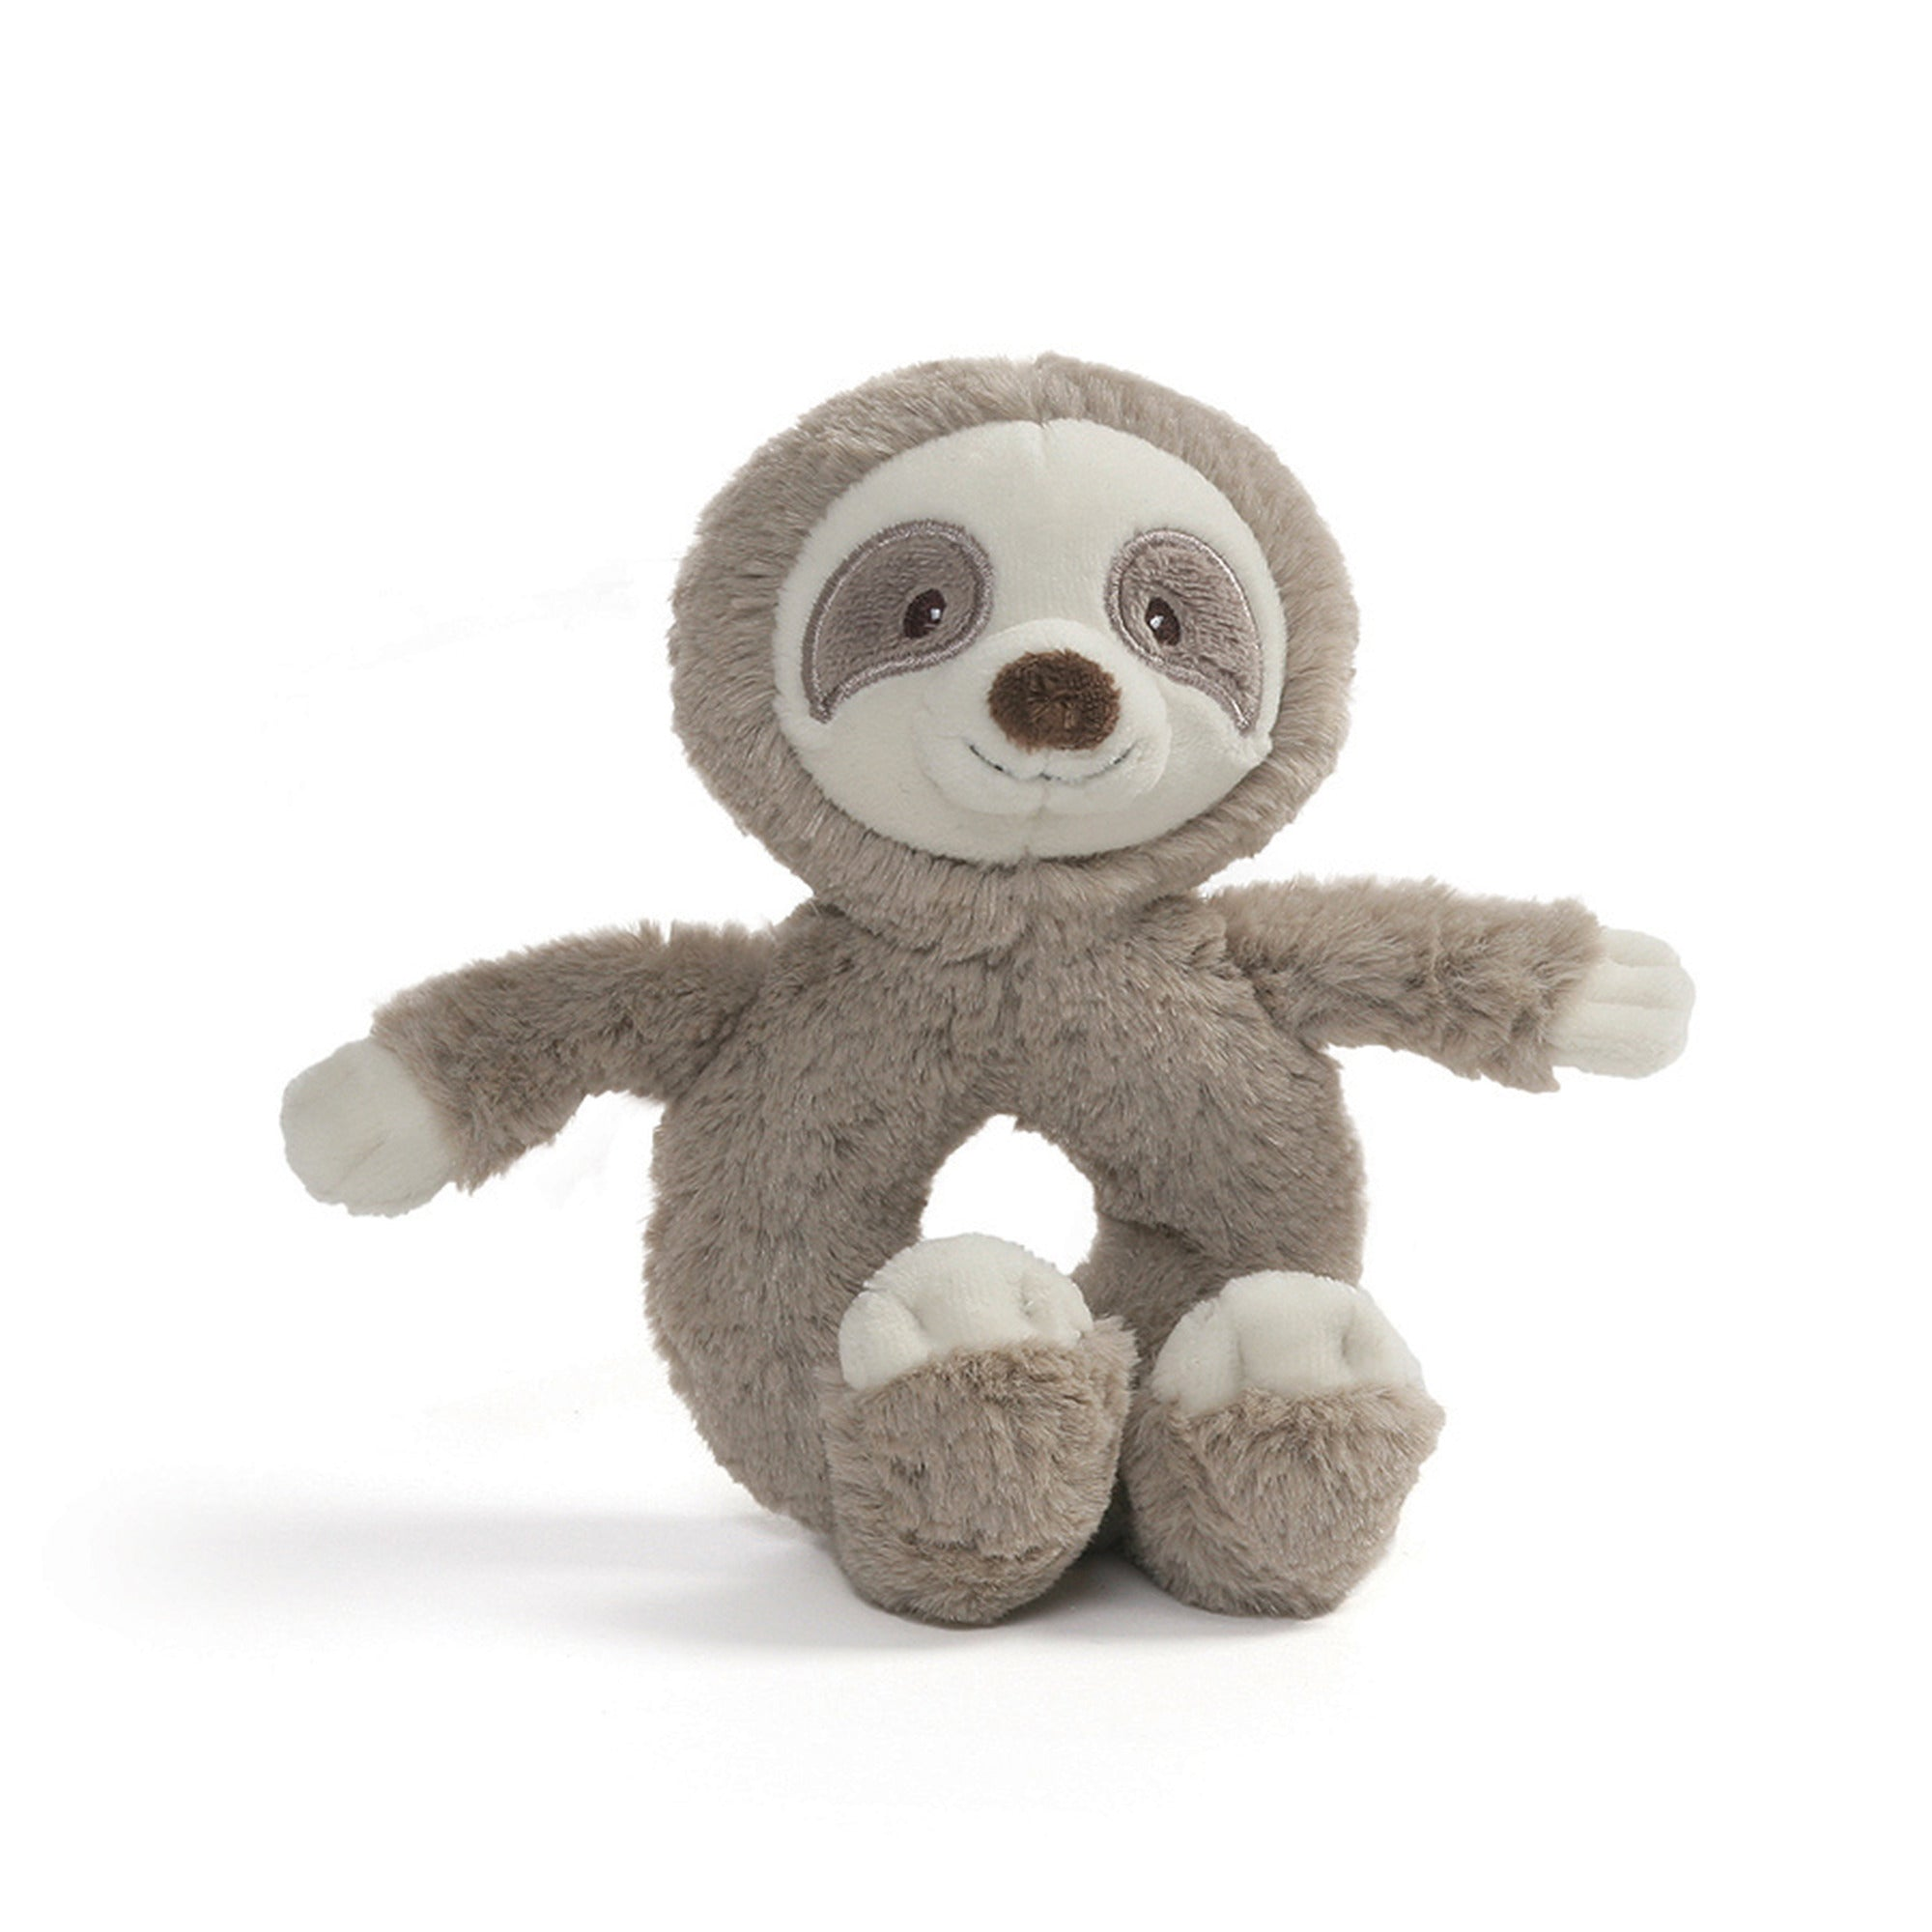 Baby Gund - Toothpick Sloth Rattle - 7.5""